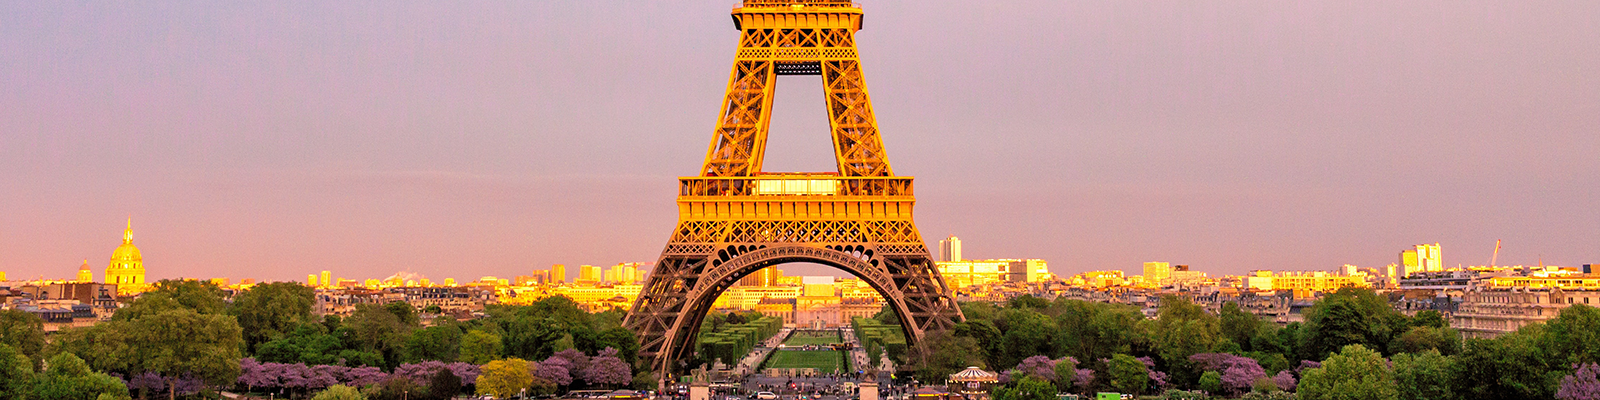 shot of the Eiffel tower in France